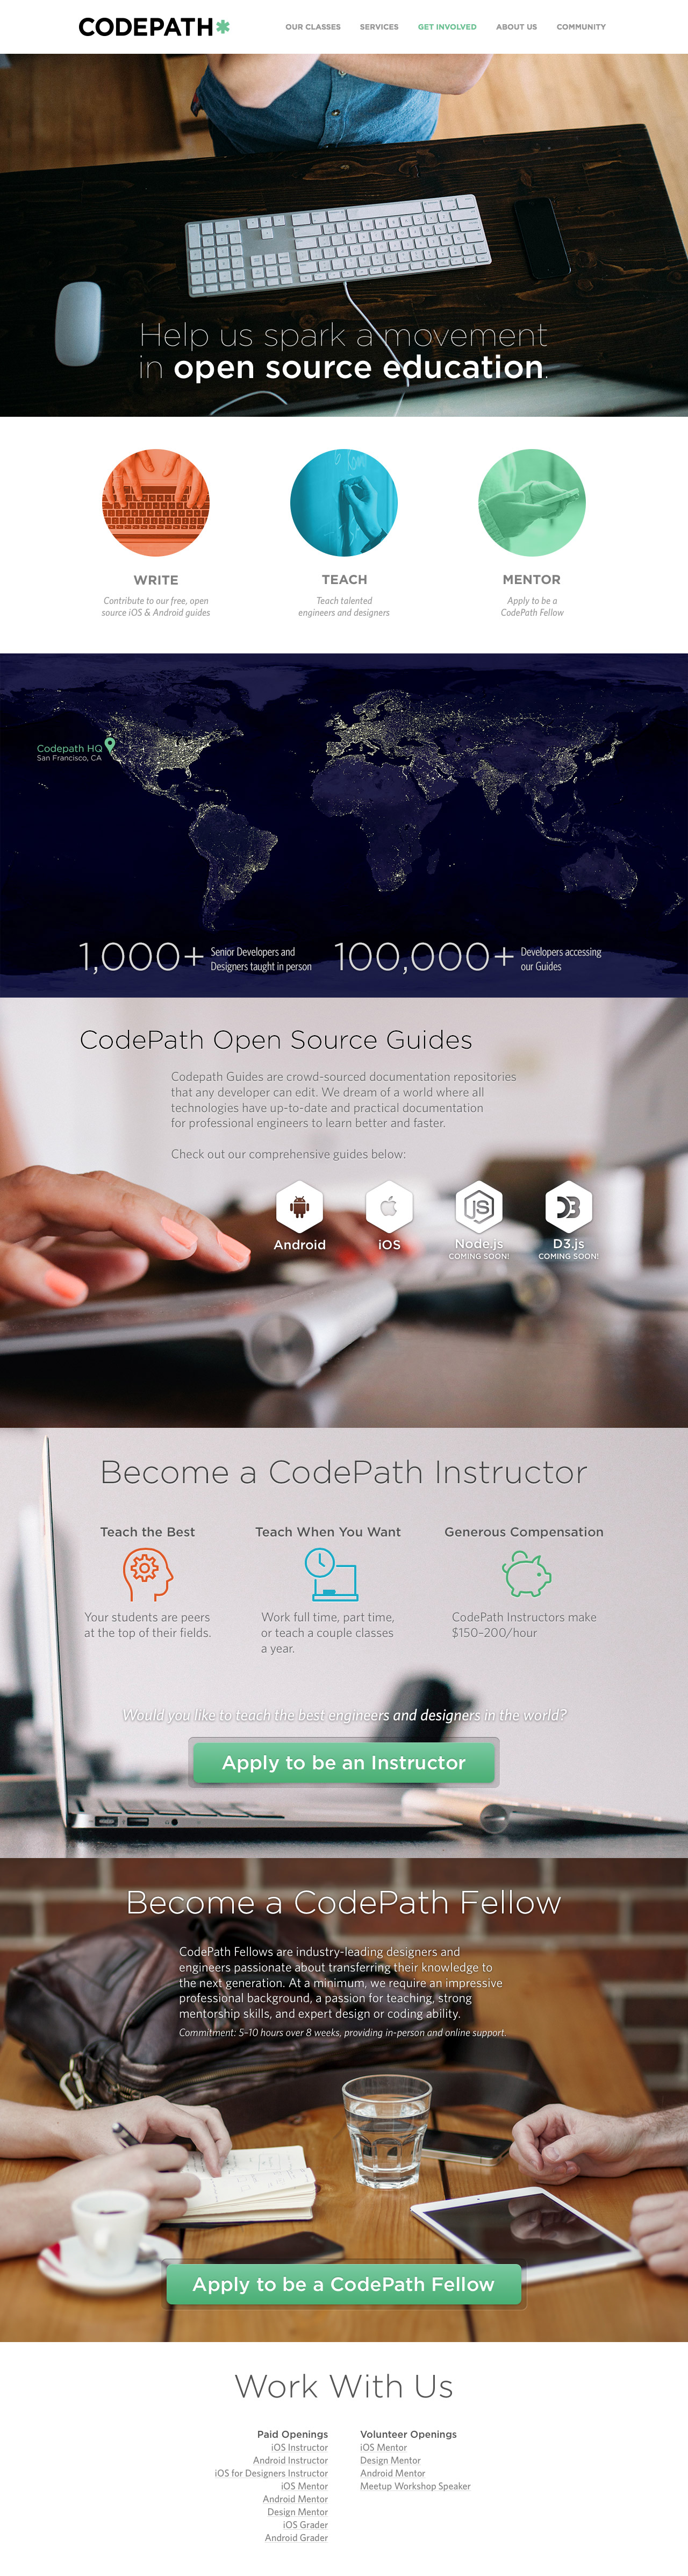 Codepath-GetInvolved02